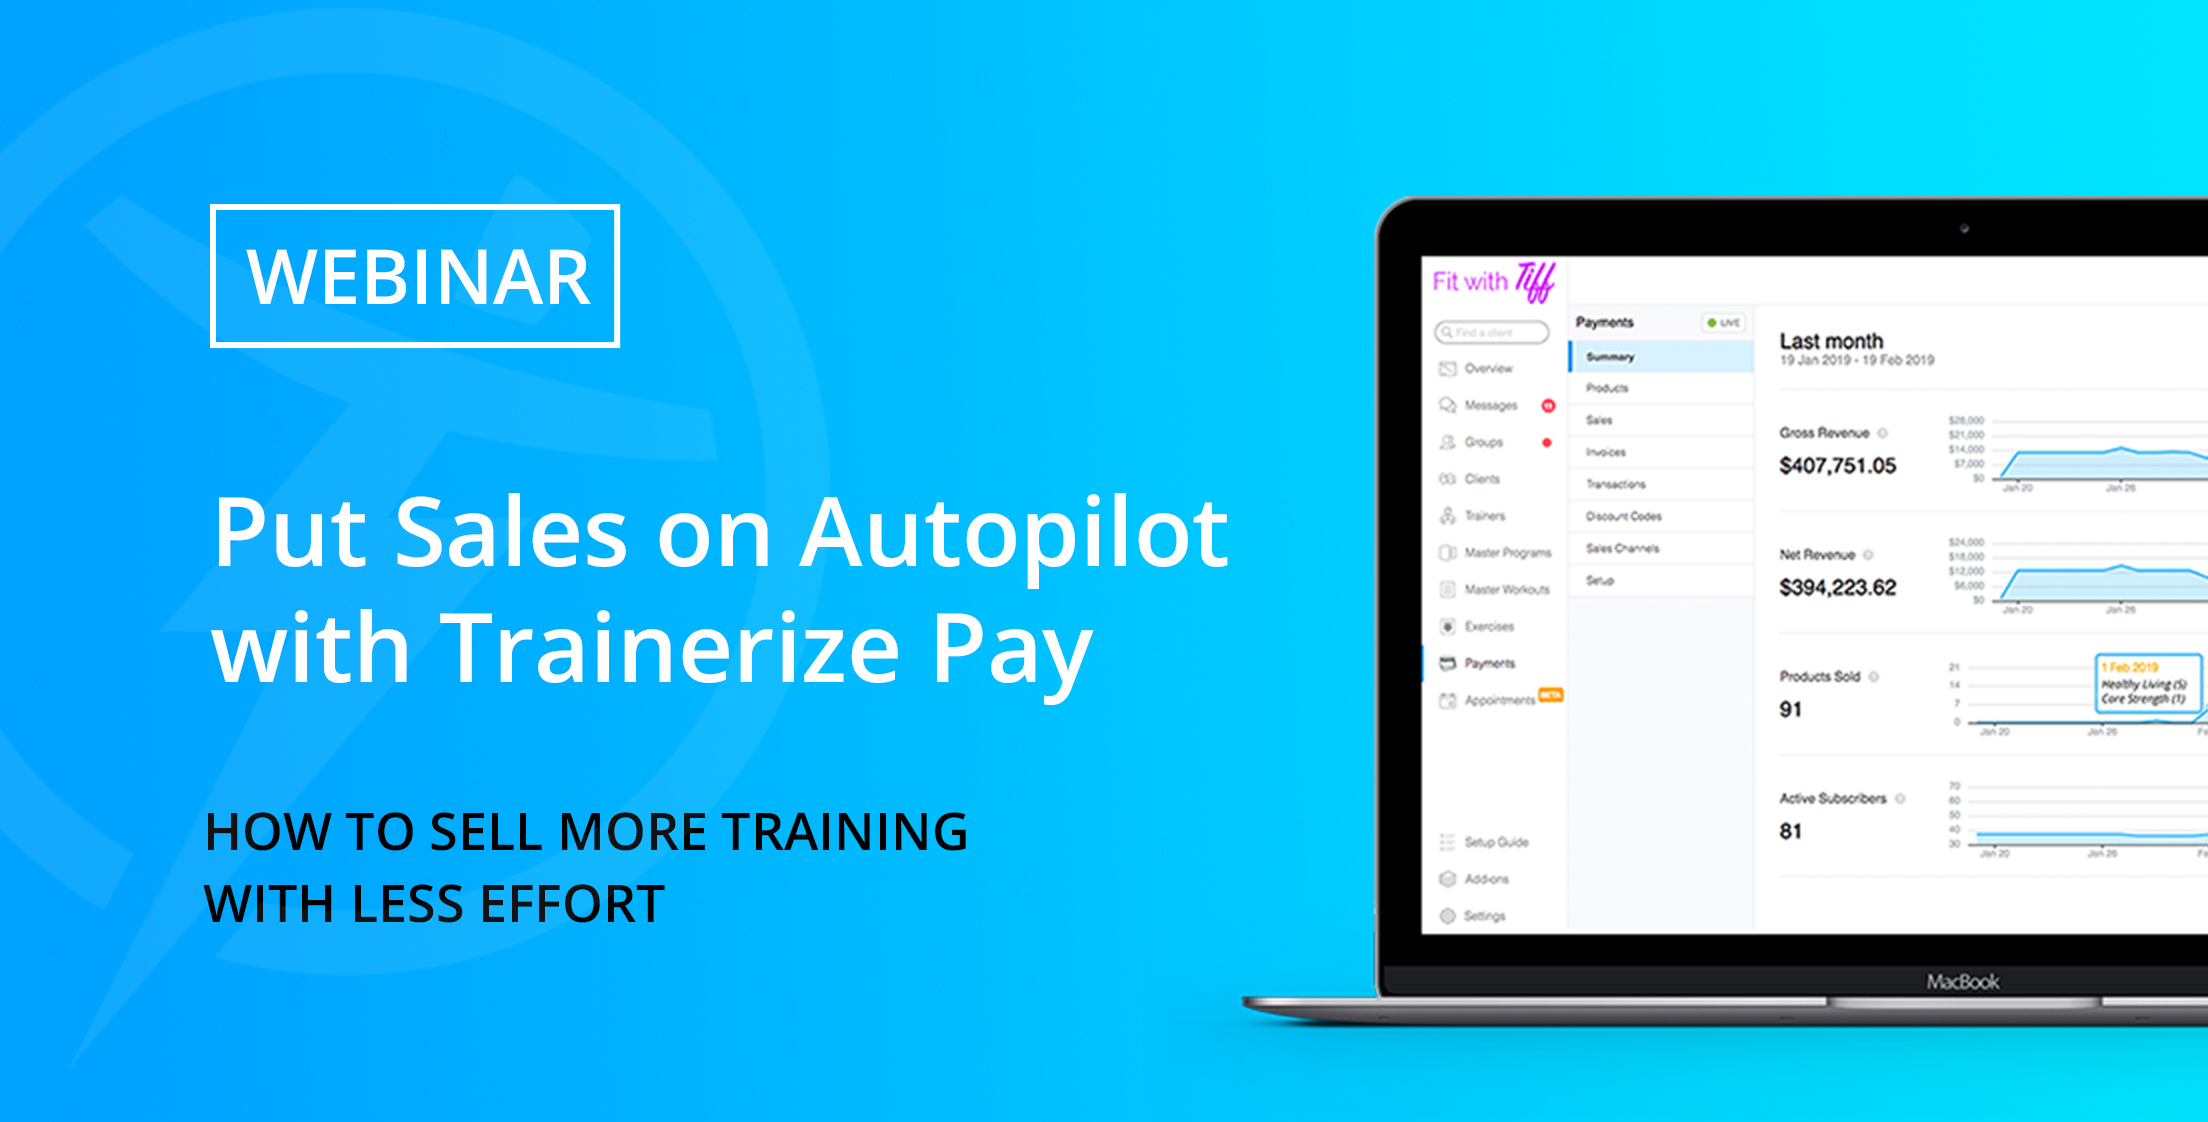 2_Trainerize Pay Webinar@2x